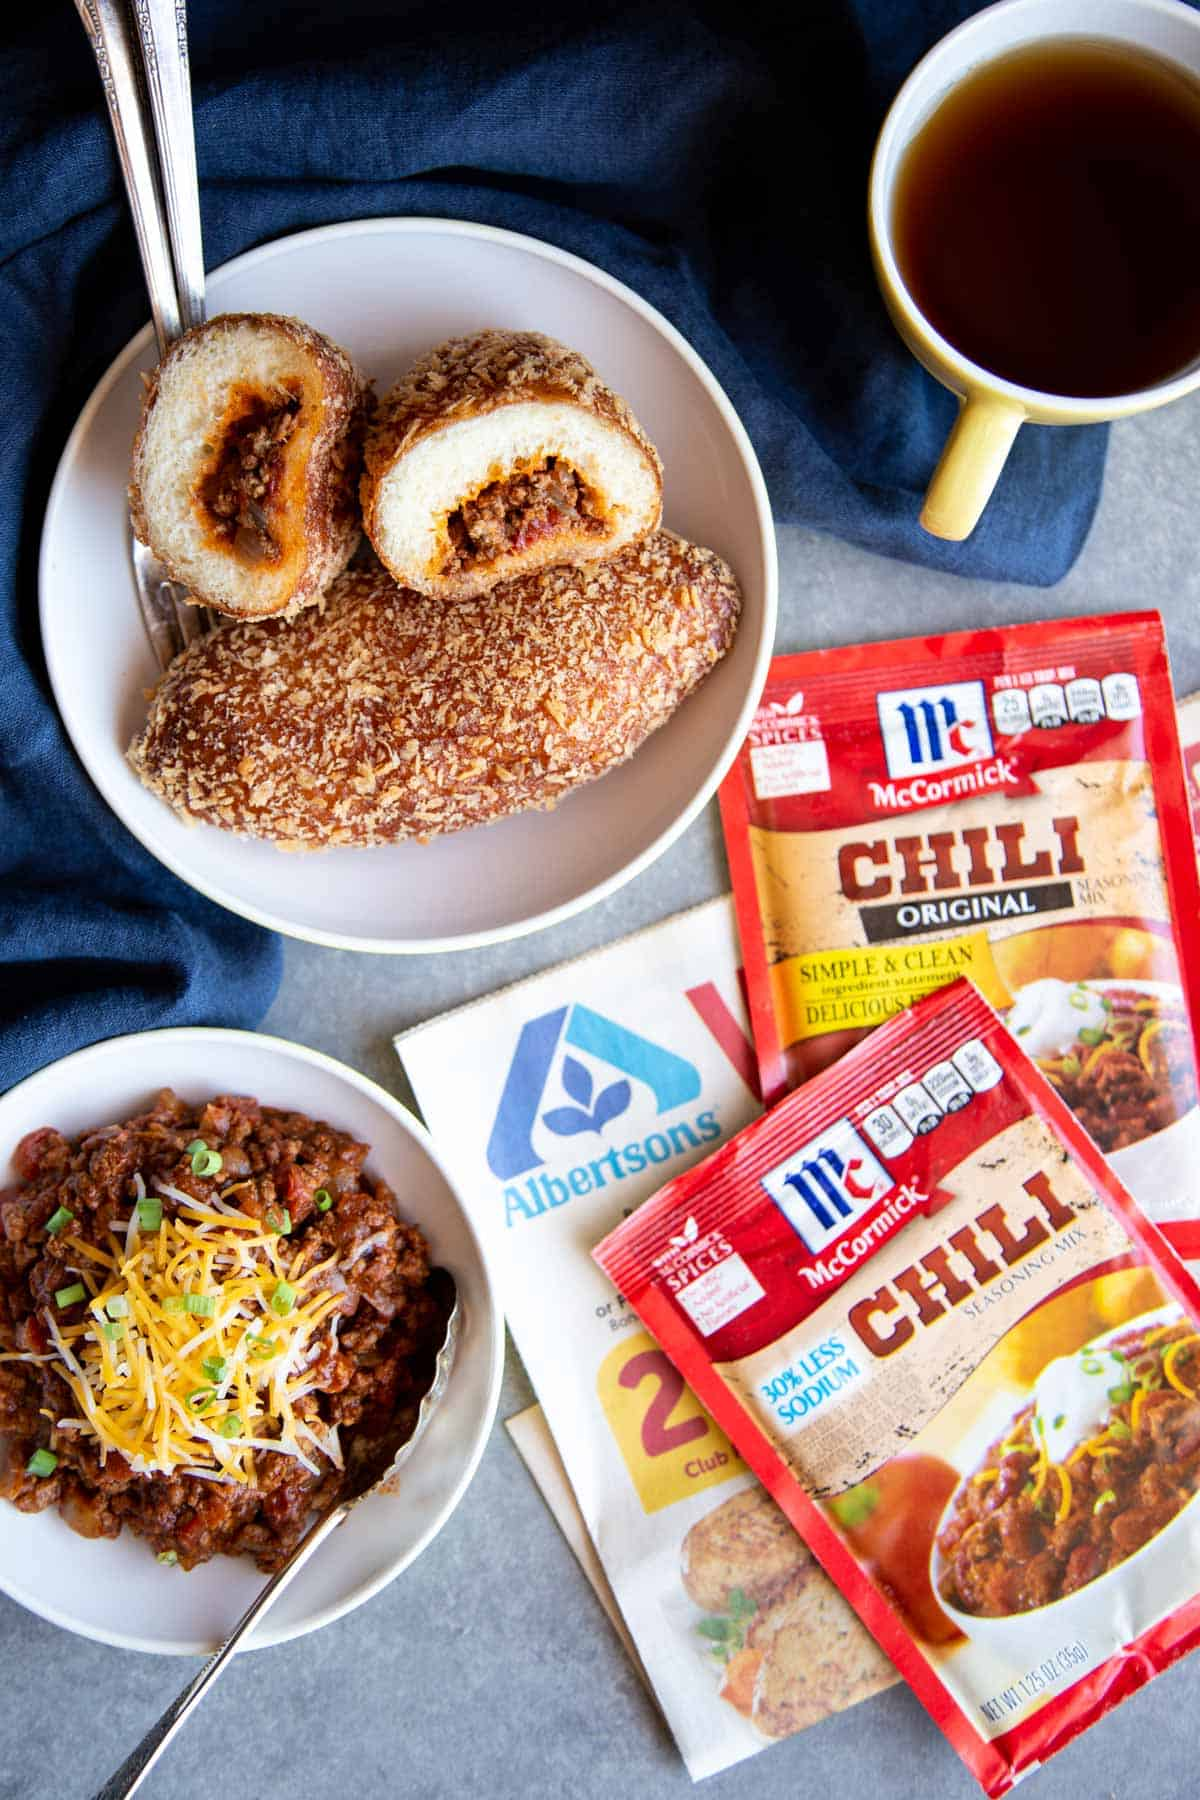 Chili bread in a bowl next to a bowl of chili and a cup of black tea